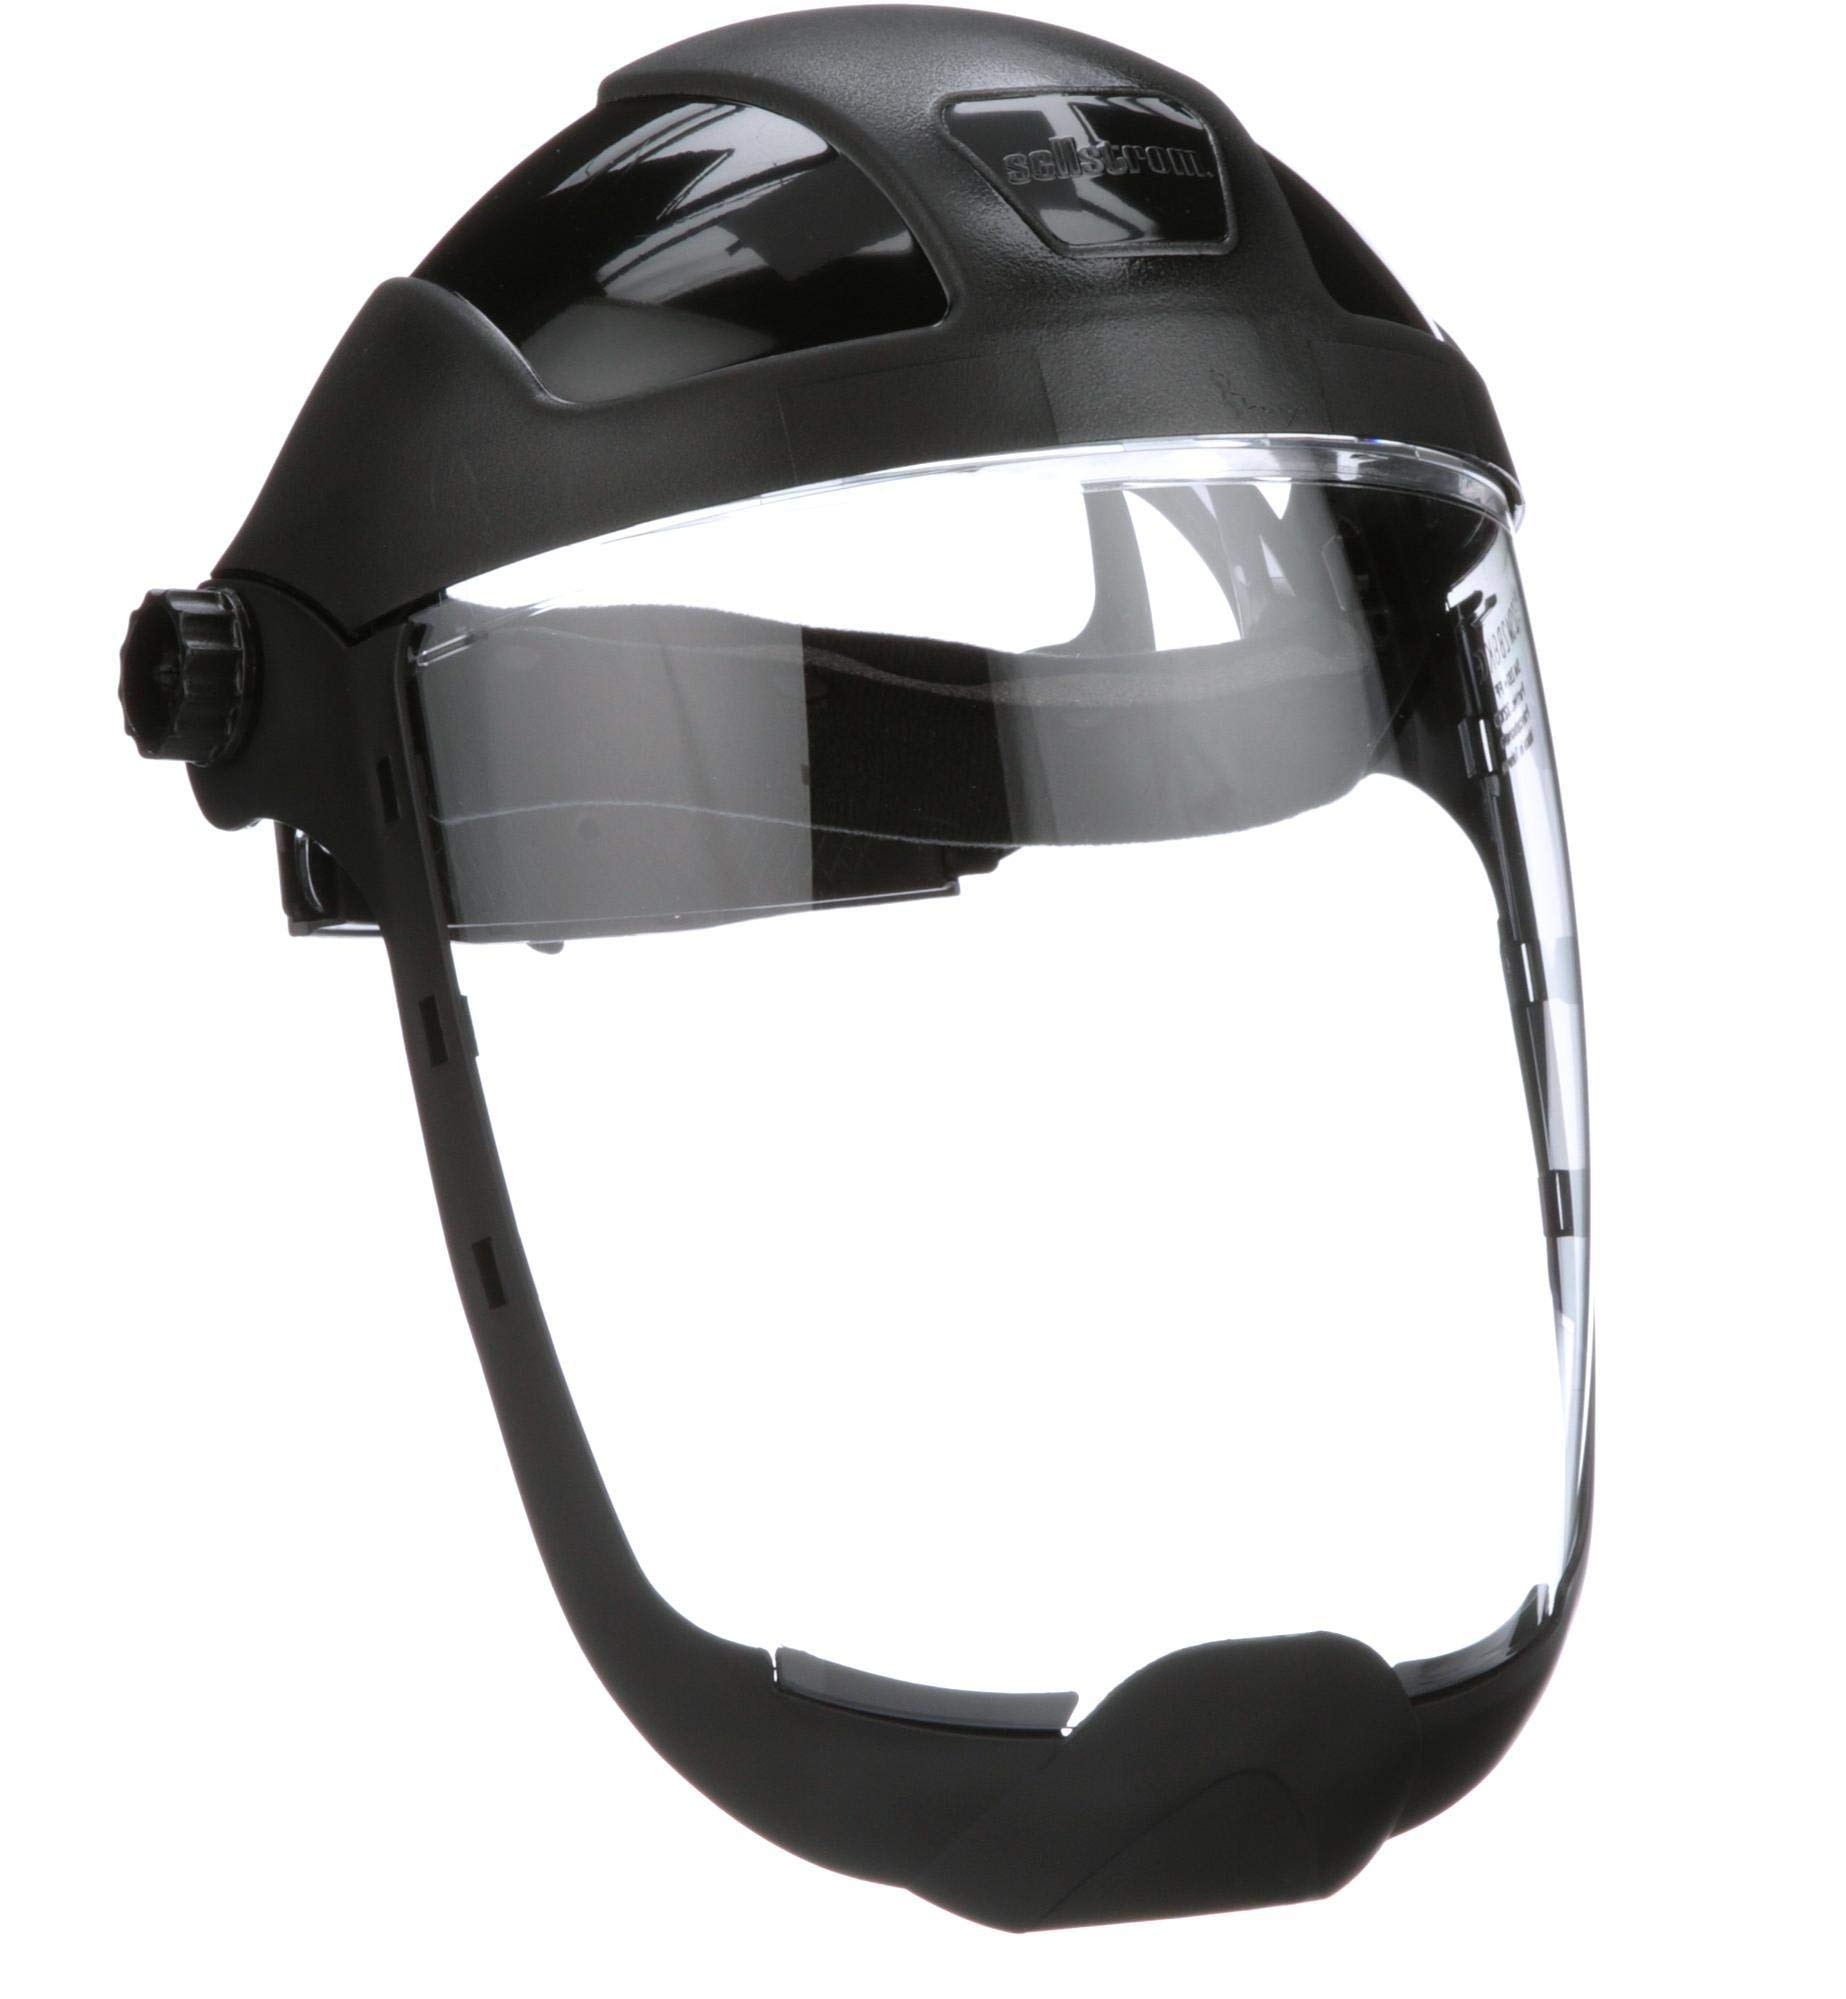 Sellstrom S32210 Clear Anti-Fog Polycarbonate Faceshield with Extended Chin Guard, Ratchet Headgear, ANSI Compliant by Sellstrom